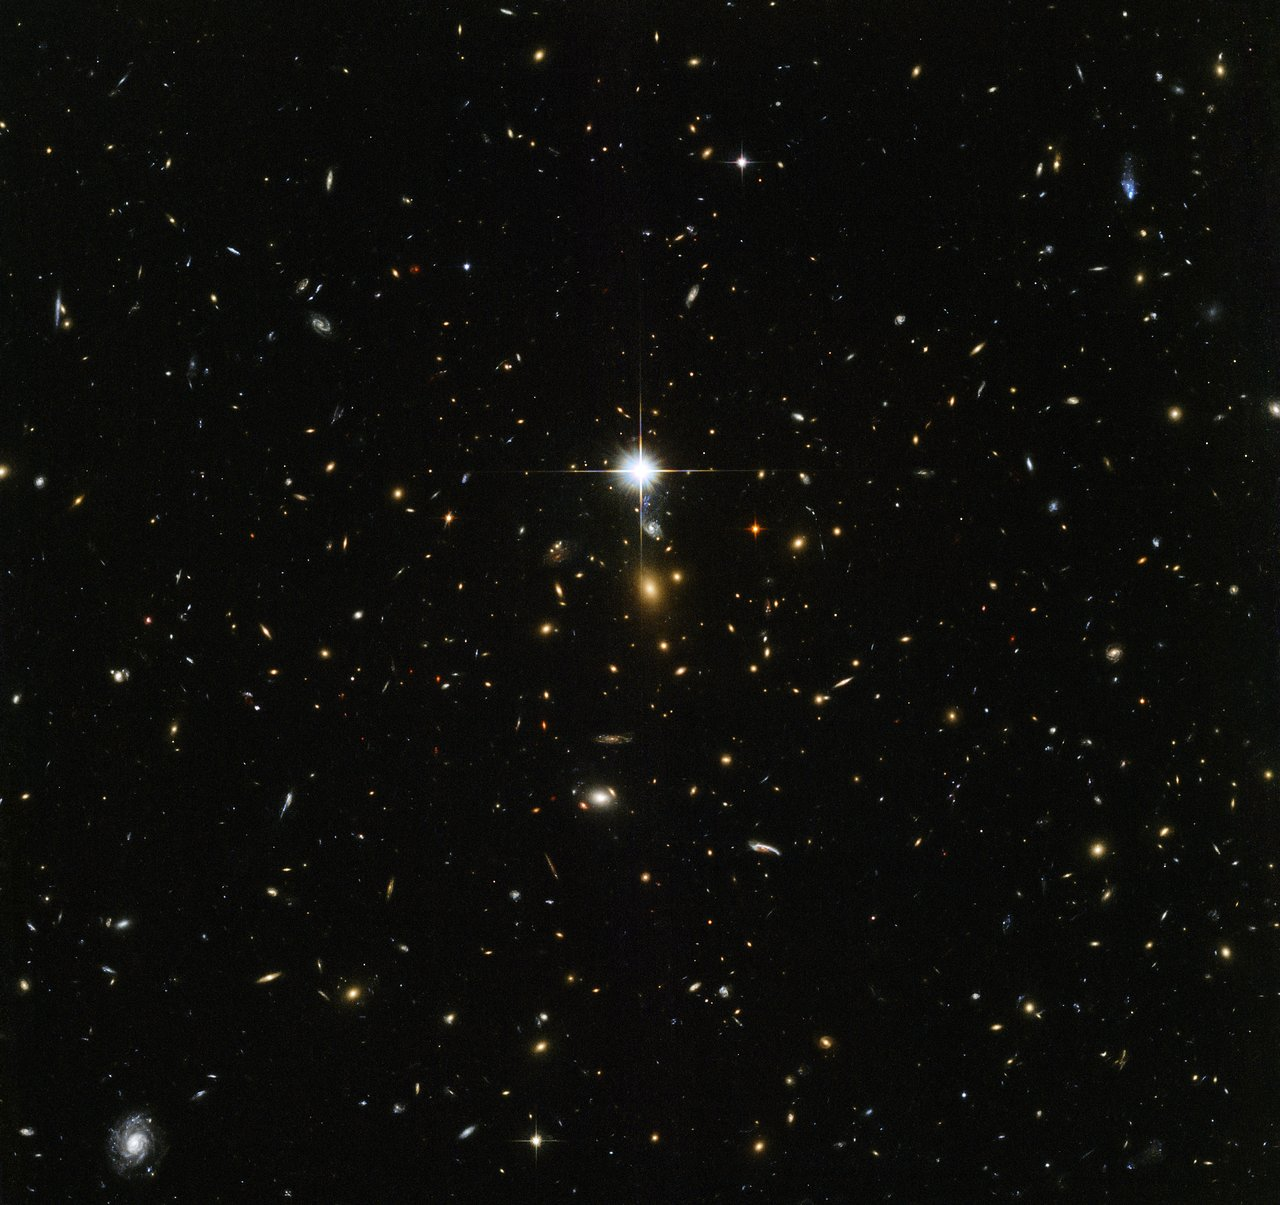 This NASA/ESA Hubble Space Telescope image is chock-full of galaxies — each glowing speck is a different galaxy, bar the bright flash in the middle of the image which is actually a star lying within our own galaxy that just happened to be in the way. At the centre of the image lies something especially interesting, the centre of the massive galaxy cluster called WHL J24.3324-8.477, including the brightest galaxy of the cluster. The Universe contains structures on various scales — planets collect around stars, stars collect into galaxies, galaxies collect into groups, and galaxy groups collect into clusters. Galaxy clusters contain hundreds to thousands of galaxies bound together by gravity. Dark matter and dark energy play key roles in the formation and evolution of these clusters, so studying massive galaxy clusters can help scientists to unravel the mysteries of these elusive phenomena. This infrared image was taken by Hubble's Advanced Camera for Surveys and Wide-Field Camera 3 as part of an observing programme called RELICS (Reionization Lensing Cluster Survey). RELICS imaged 41 massive galaxy clusters with the aim of finding the brightest distant galaxies for the forthcoming NASA/ESA/CSA James Webb Space Telescope (JWST) to study. Such research will tell us more about our cosmic origins.